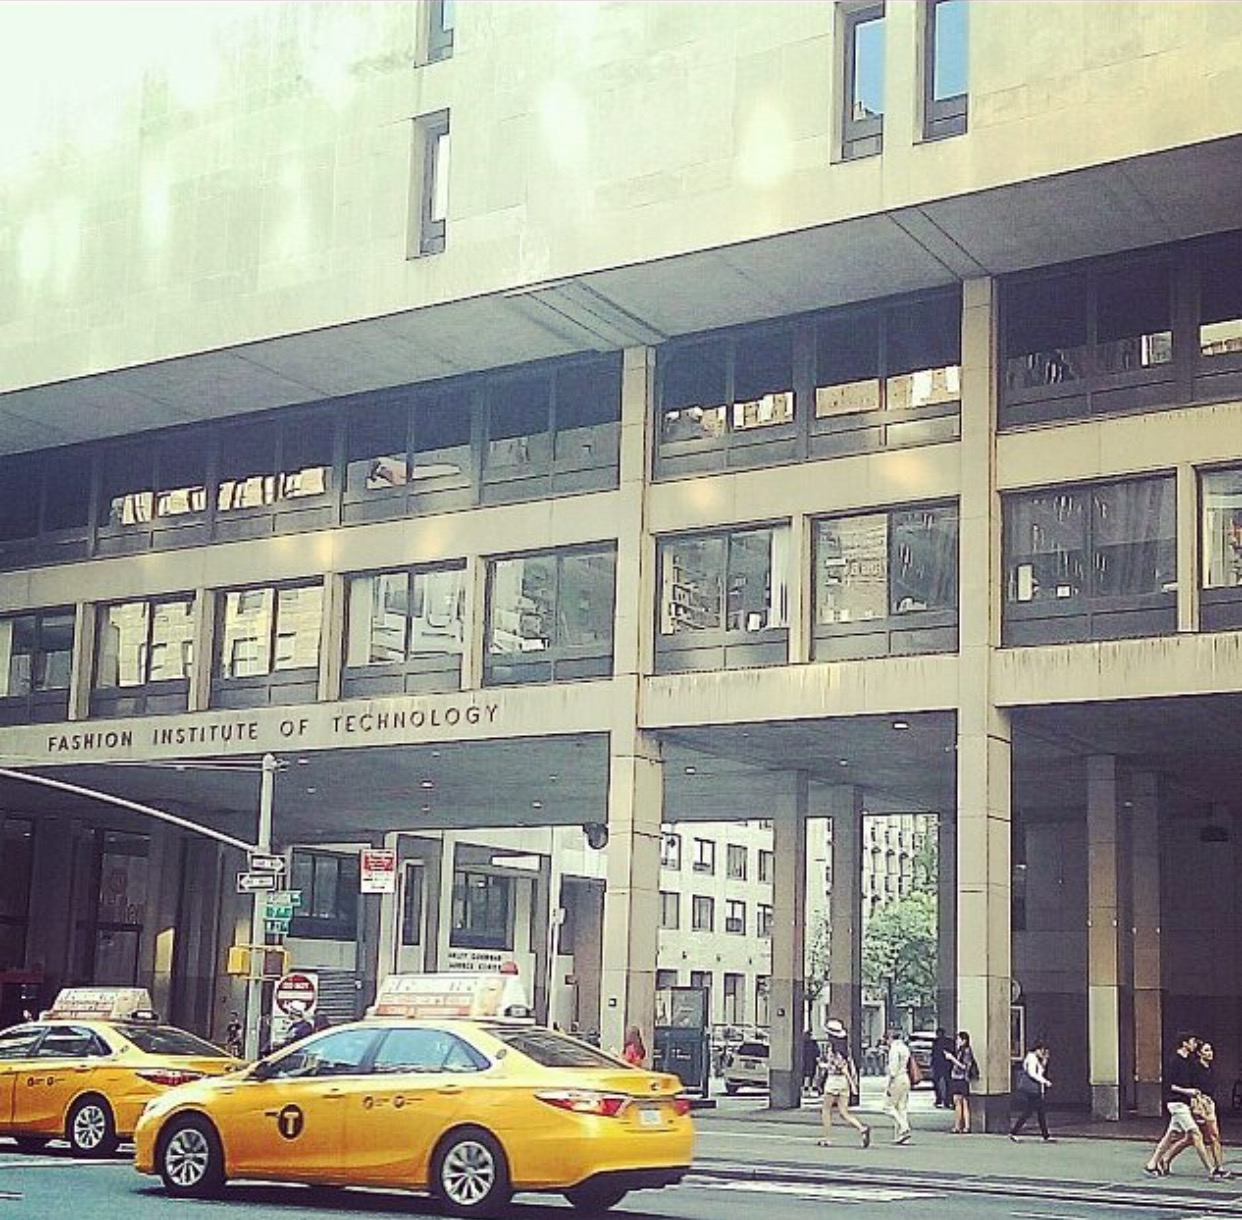 Alma Mater - The Fashion Institute of Technology at W27th Street and 7th Avenue NYC